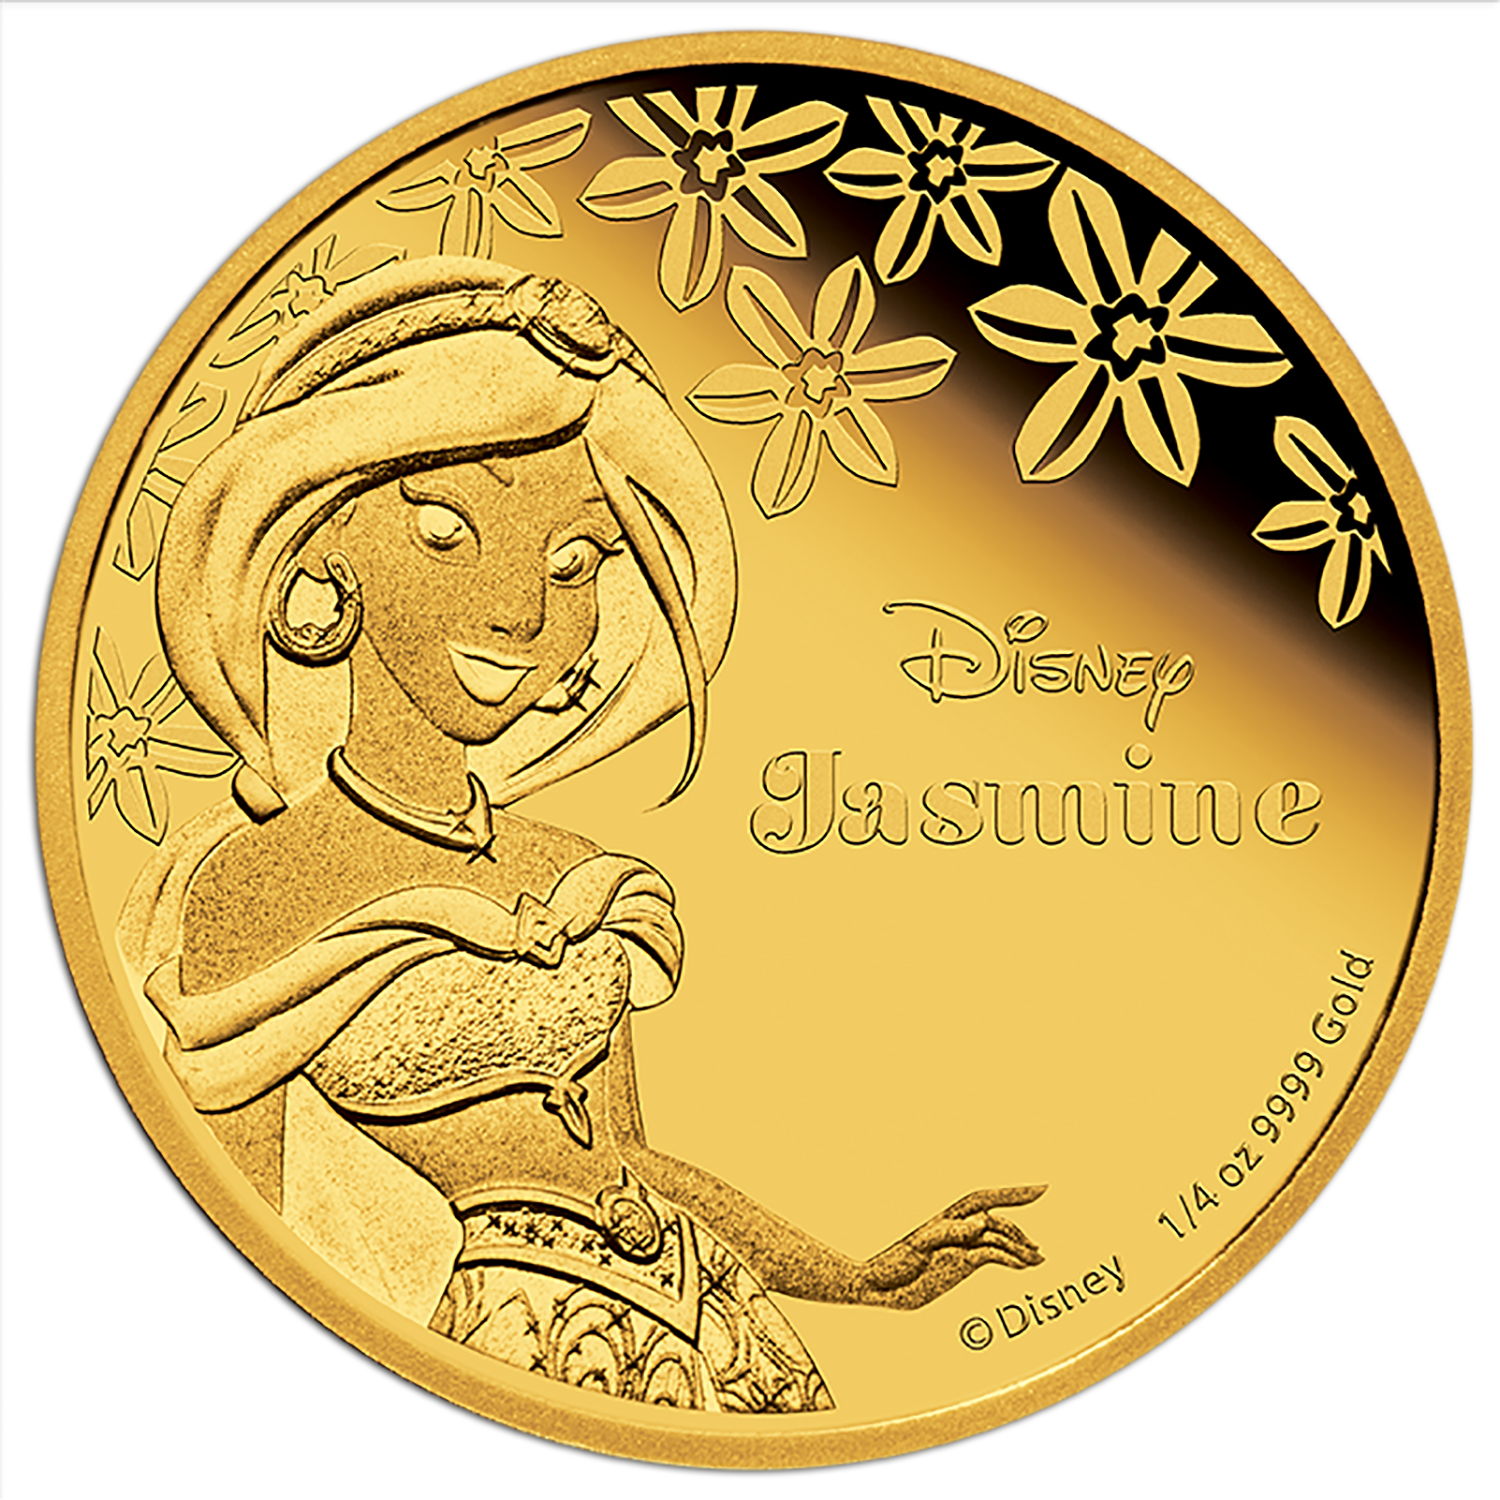 2015 Niue 1/4 oz Proof Gold $25 Disney Princess Jasmine